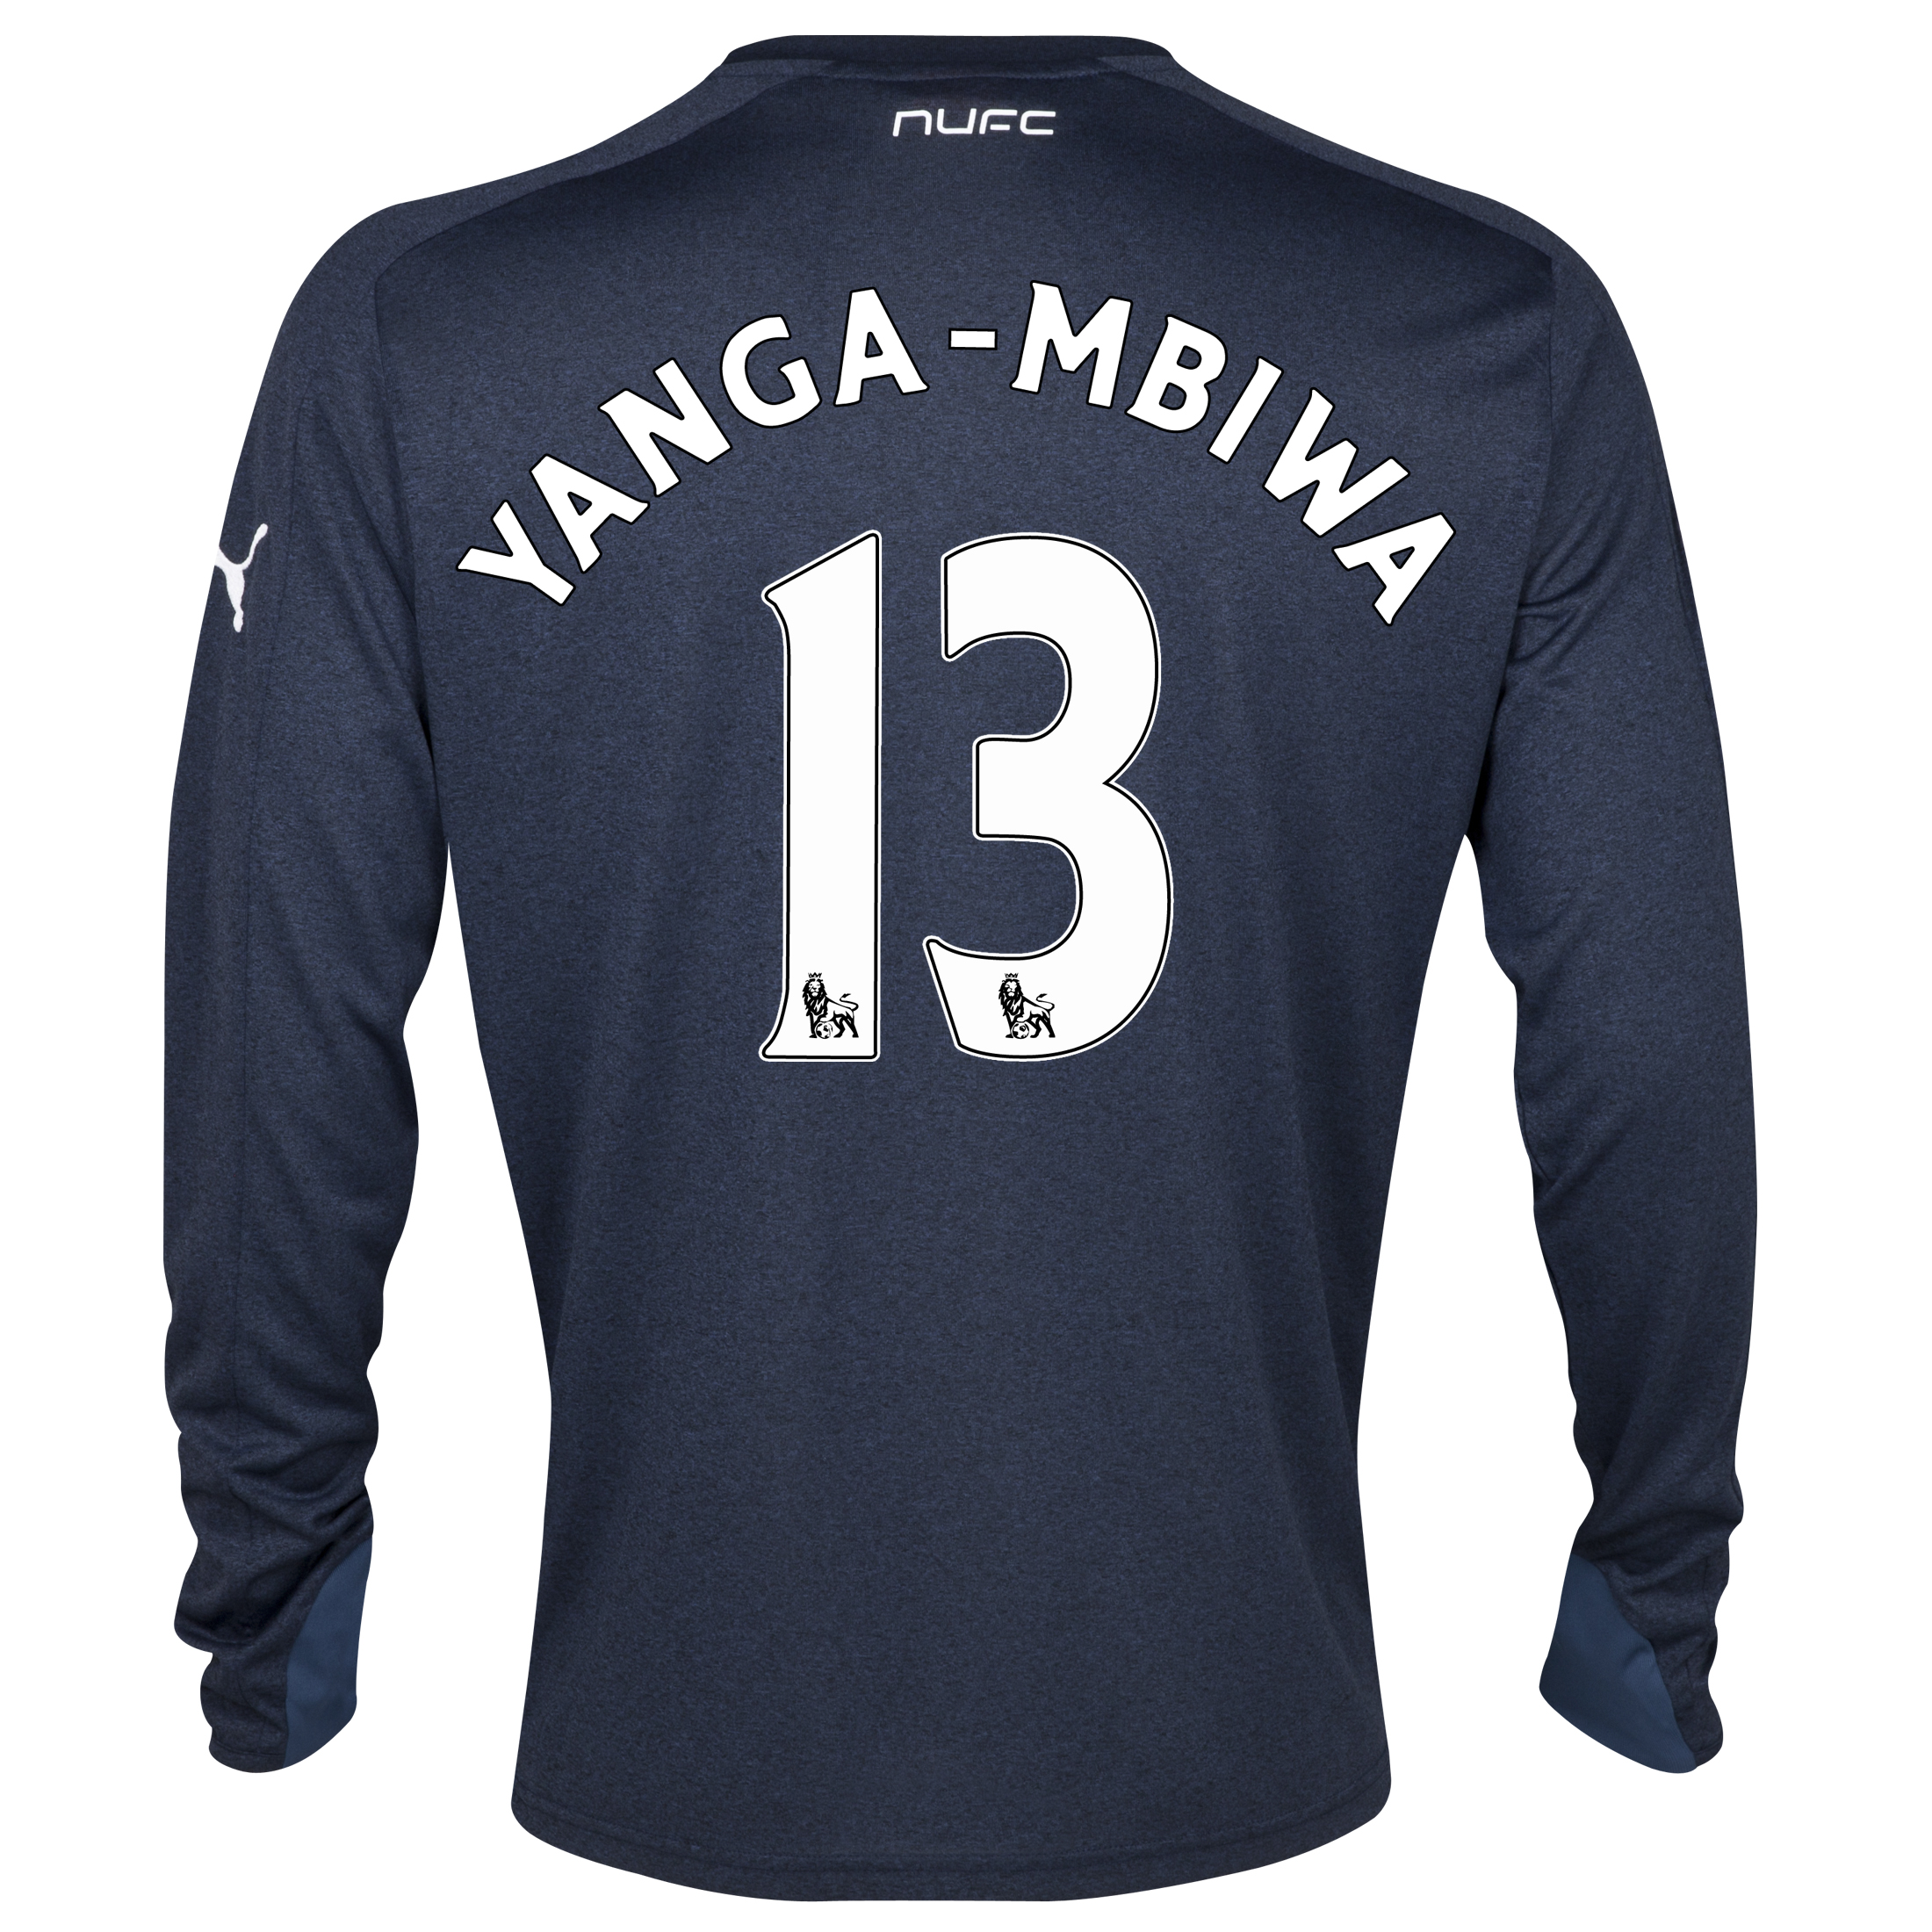 Newcastle United Away Shirt 2013/14- Long Sleeve with Yanga-Mbiwa 13 printing